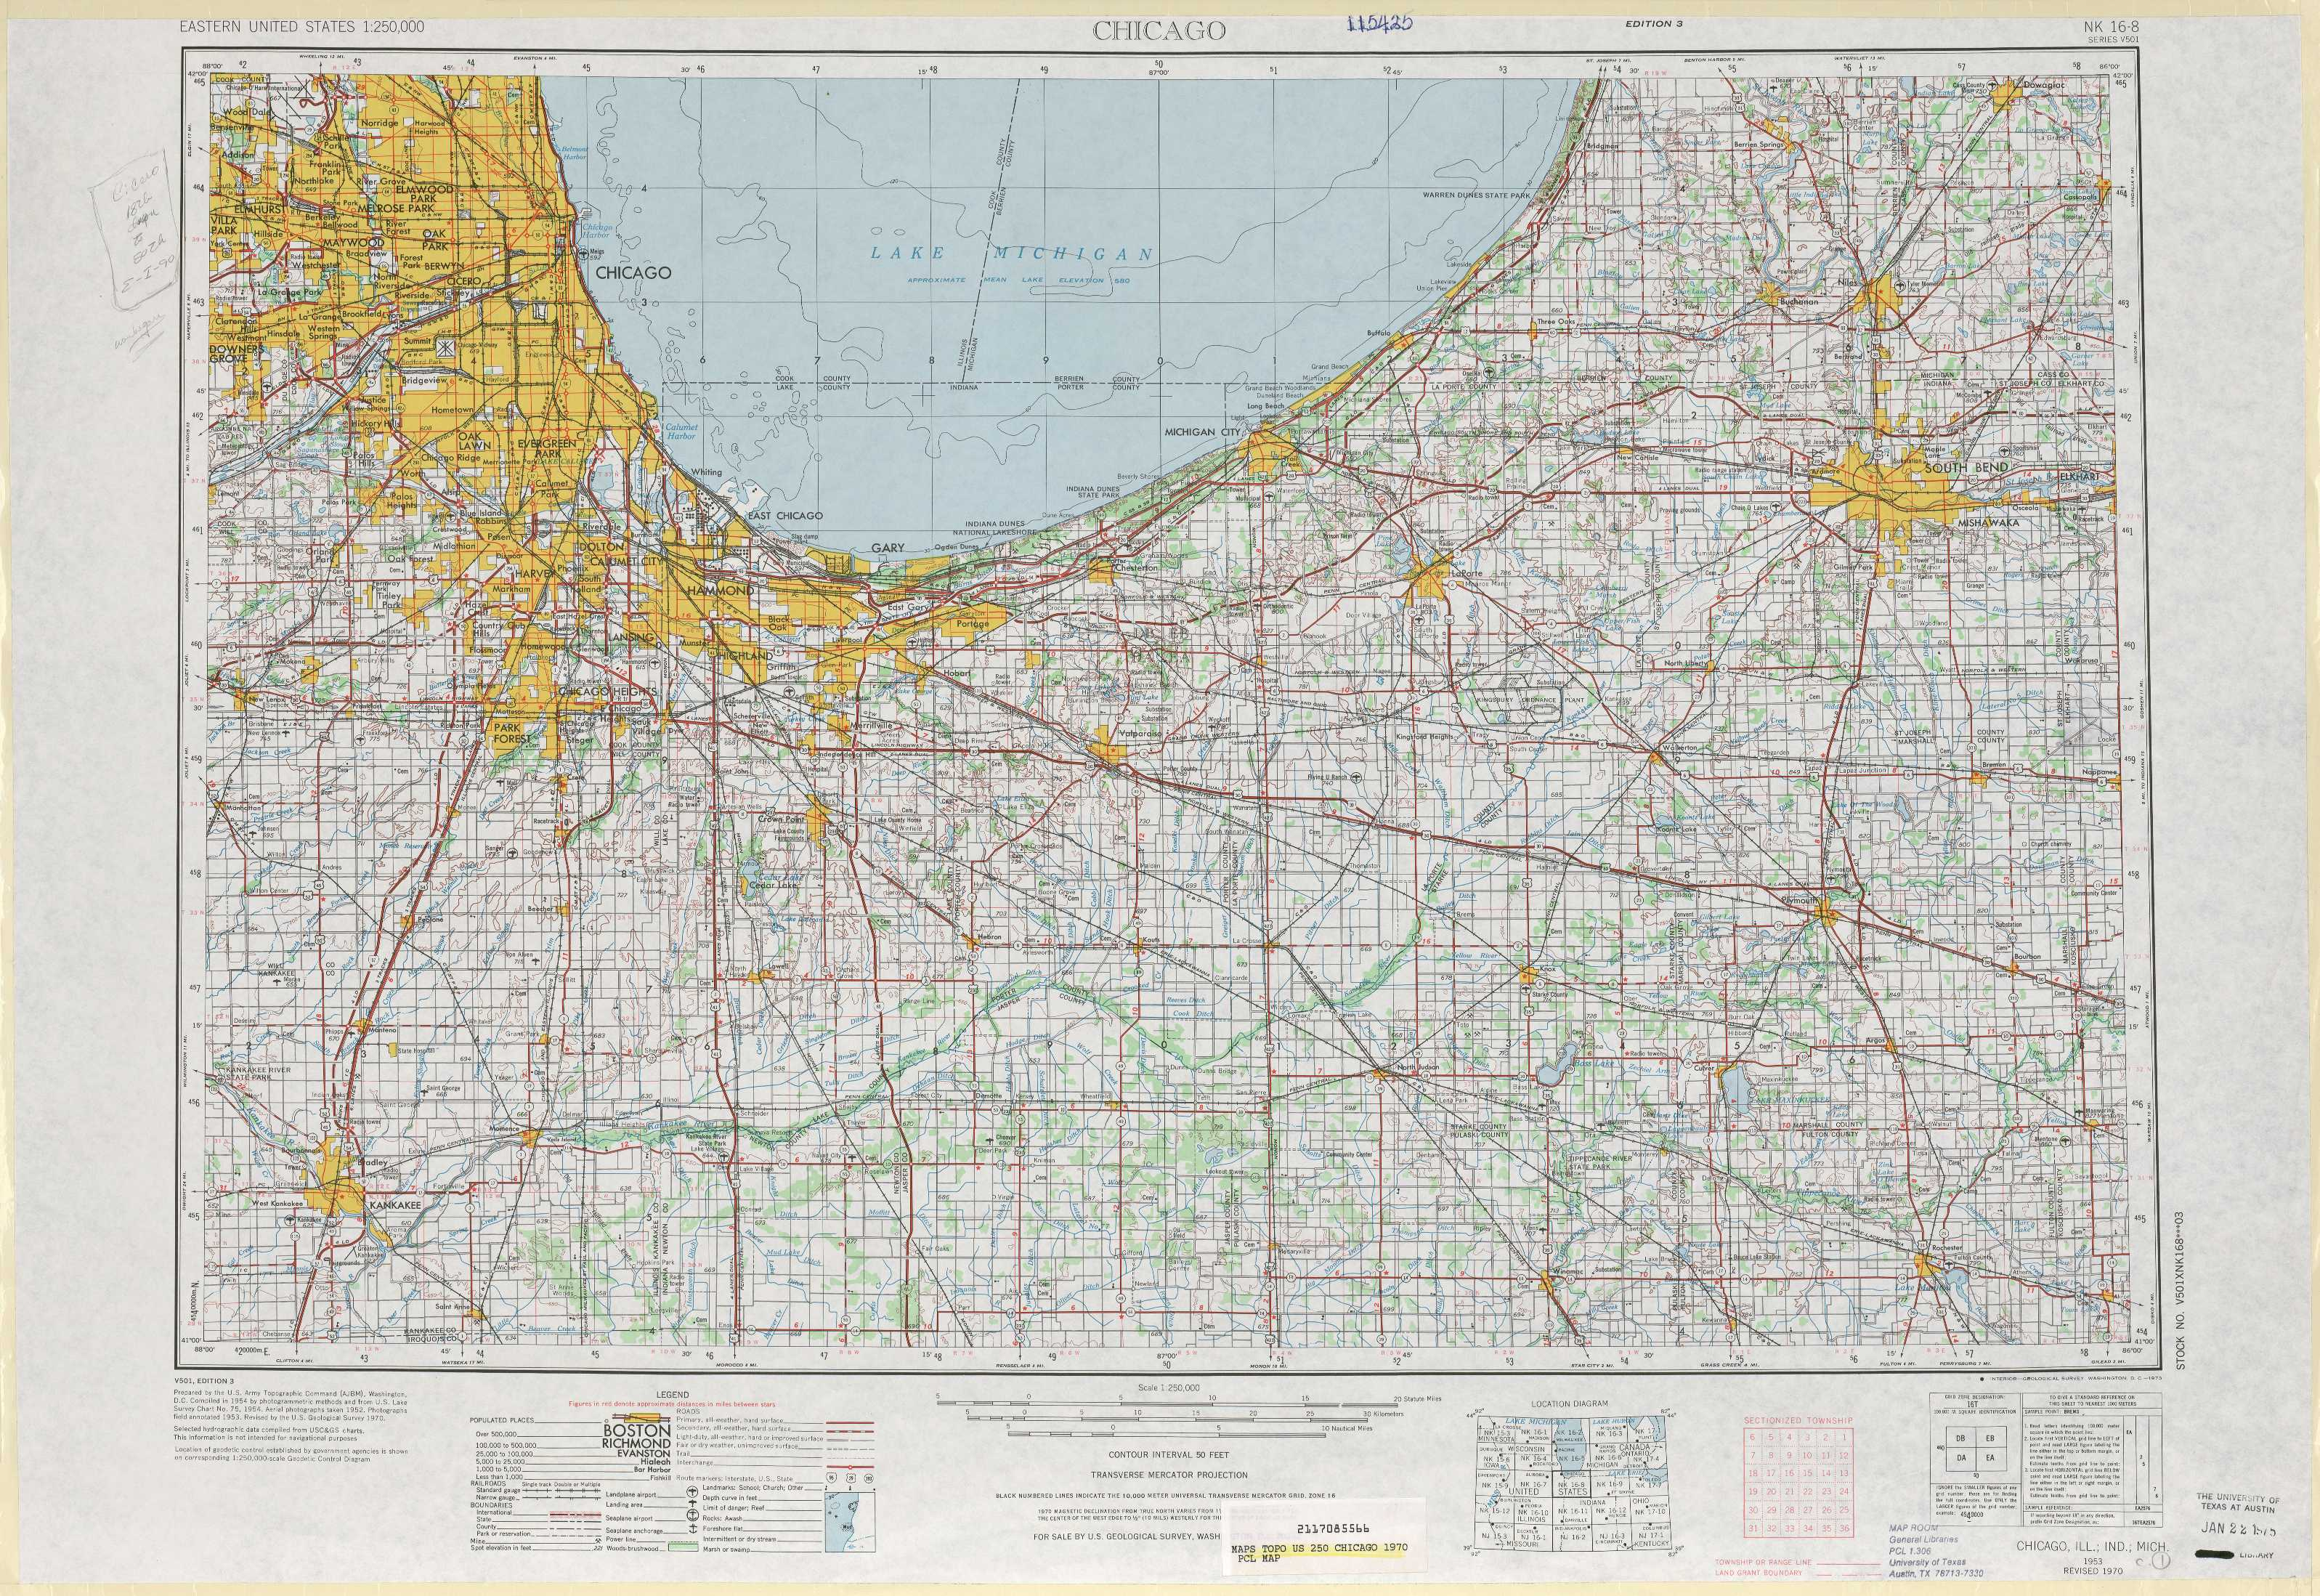 Chicago topographic maps, IN, IL, MI - USGS Topo Quad 41086a1 at 1 on metro detroit, cook county, map of st peters mo, map of new orleans la, map of durham nc, lake county, map of alexandria va, map of bountiful ut, oak park, map of indiana in, map of phoenix az, phoenix metropolitan area, chicago loop, map of long island city ny, map of white bear lake mn, map of ithaca ny, map of new york city ny, new york metropolitan area, map of chicagoland area and suburbs, greater los angeles area, map of montreal canada, delaware valley, map of carolina pr, will county, map of illinois, map of memphis tn, kane county, map of salt lake city ut, map of pocatello id, dekalb county, dupage county, map of honolulu hi, map of nashville tn,